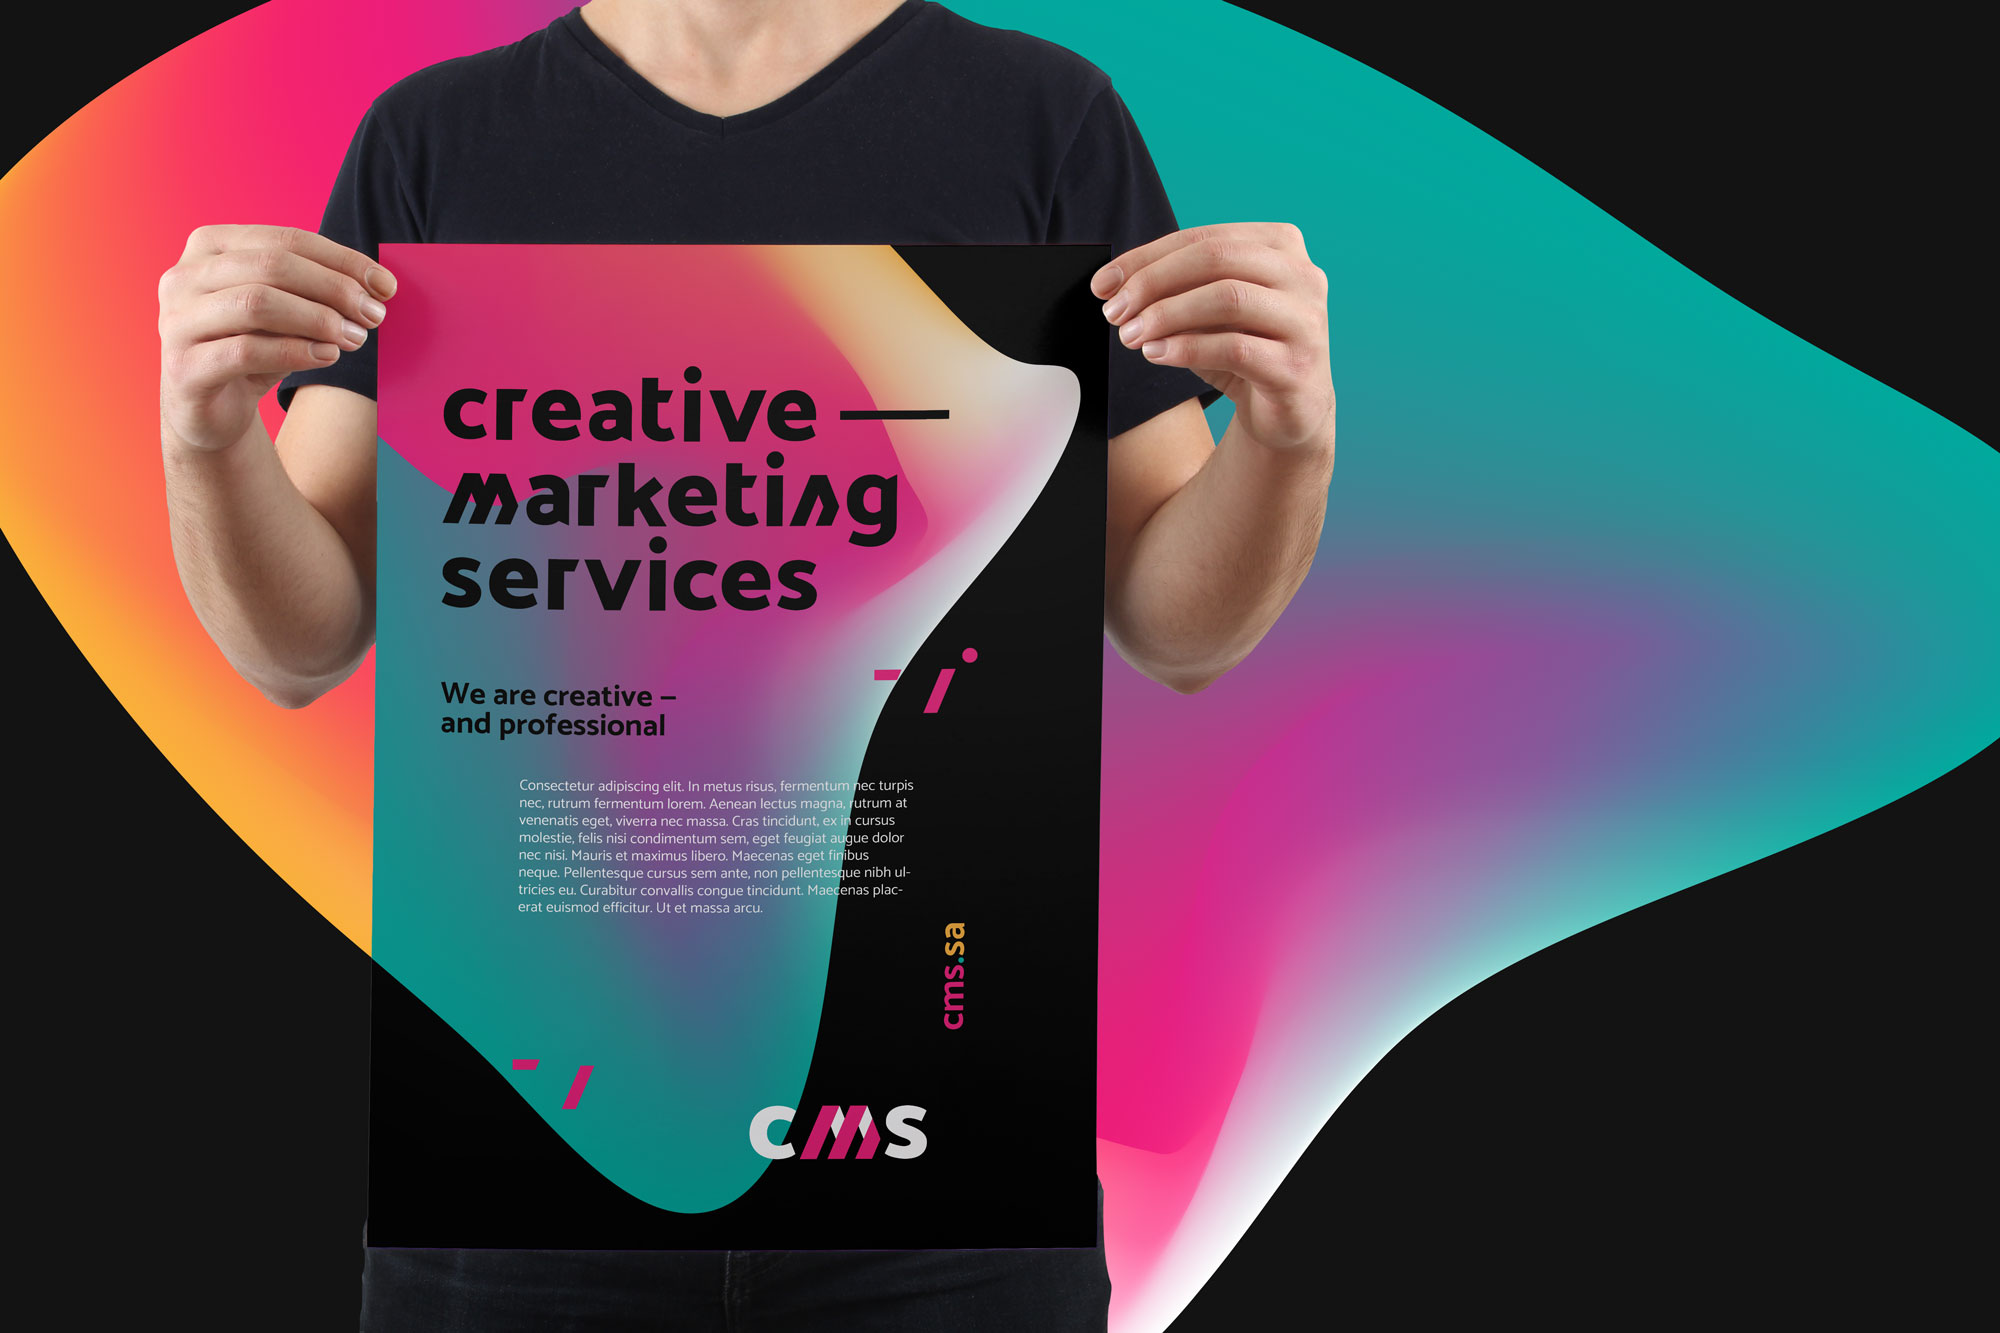 cms-poster-02-by-yastudio